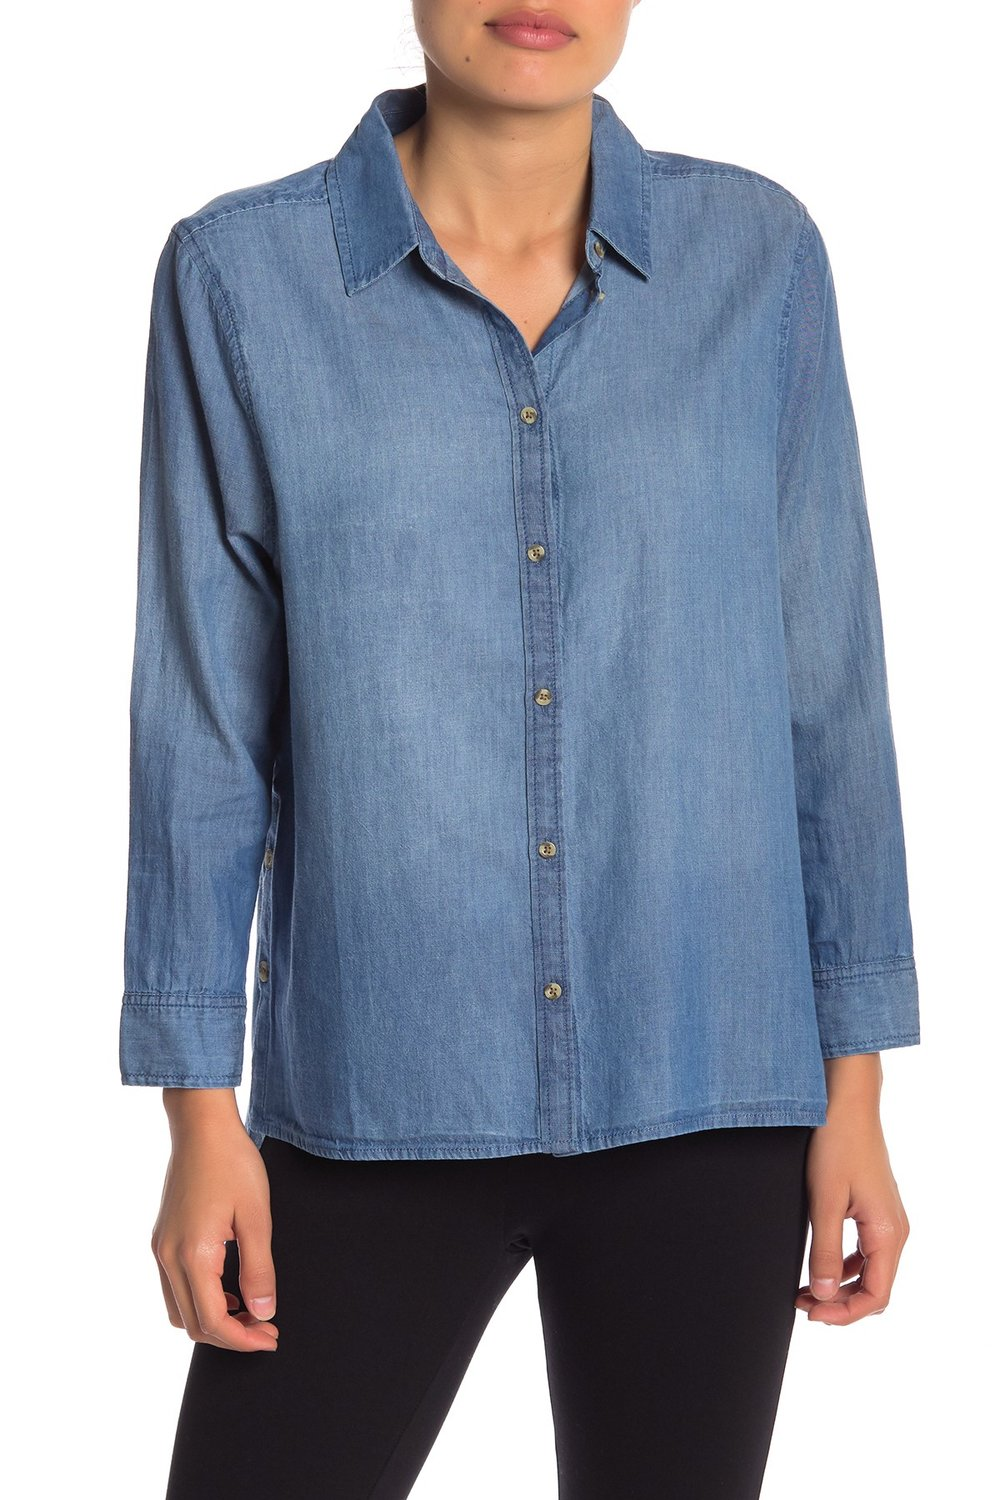 Melrose and Market Side Button Chambray Top. Nordstrom Rack. $34.